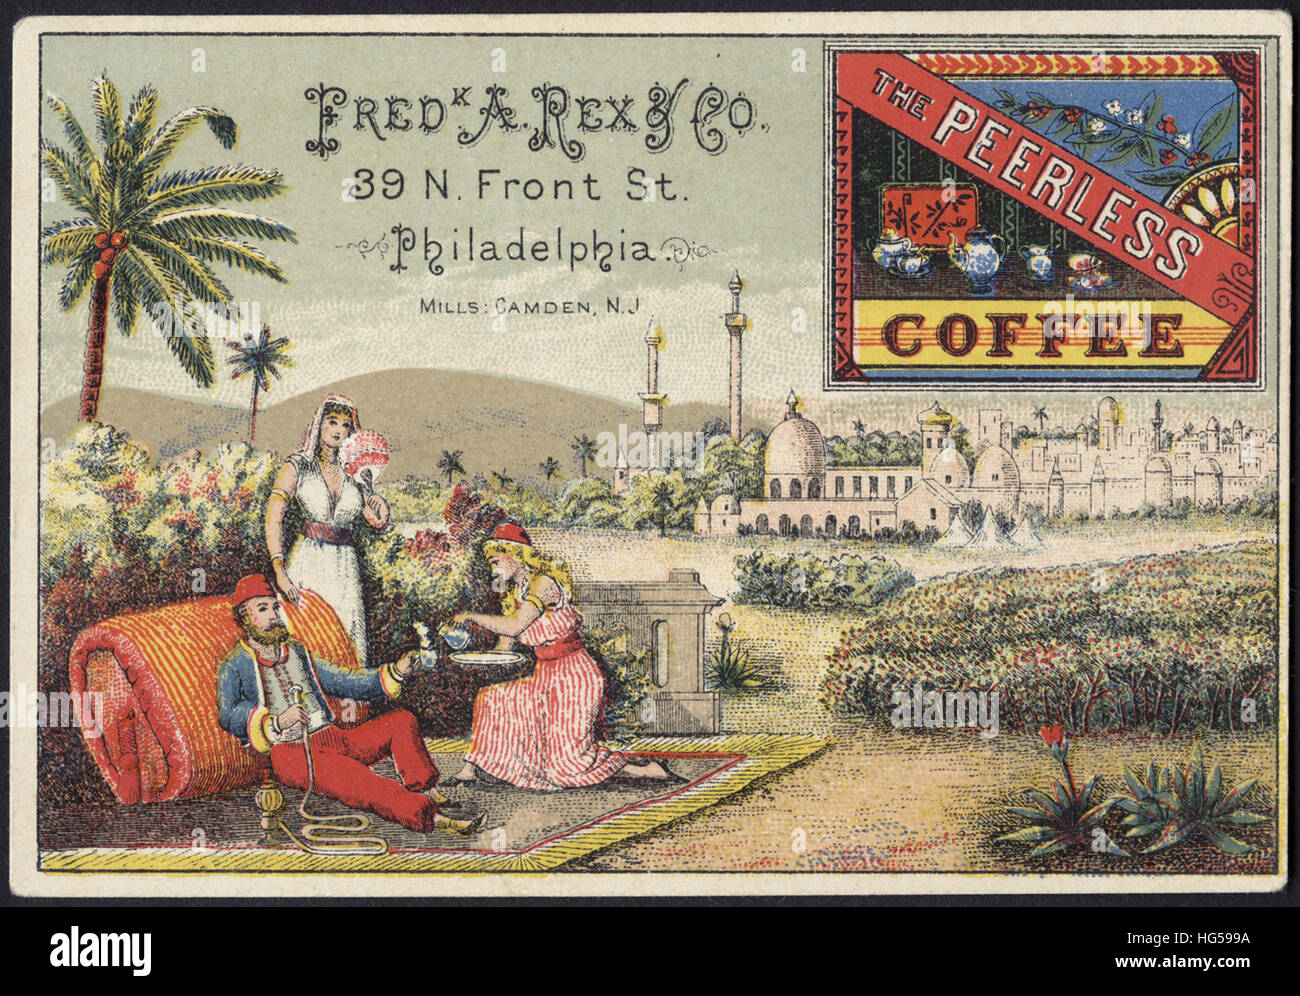 Beverage Trade Cards -  Fred K A. Rex & Co. The Peerless Coffee - Stock Image